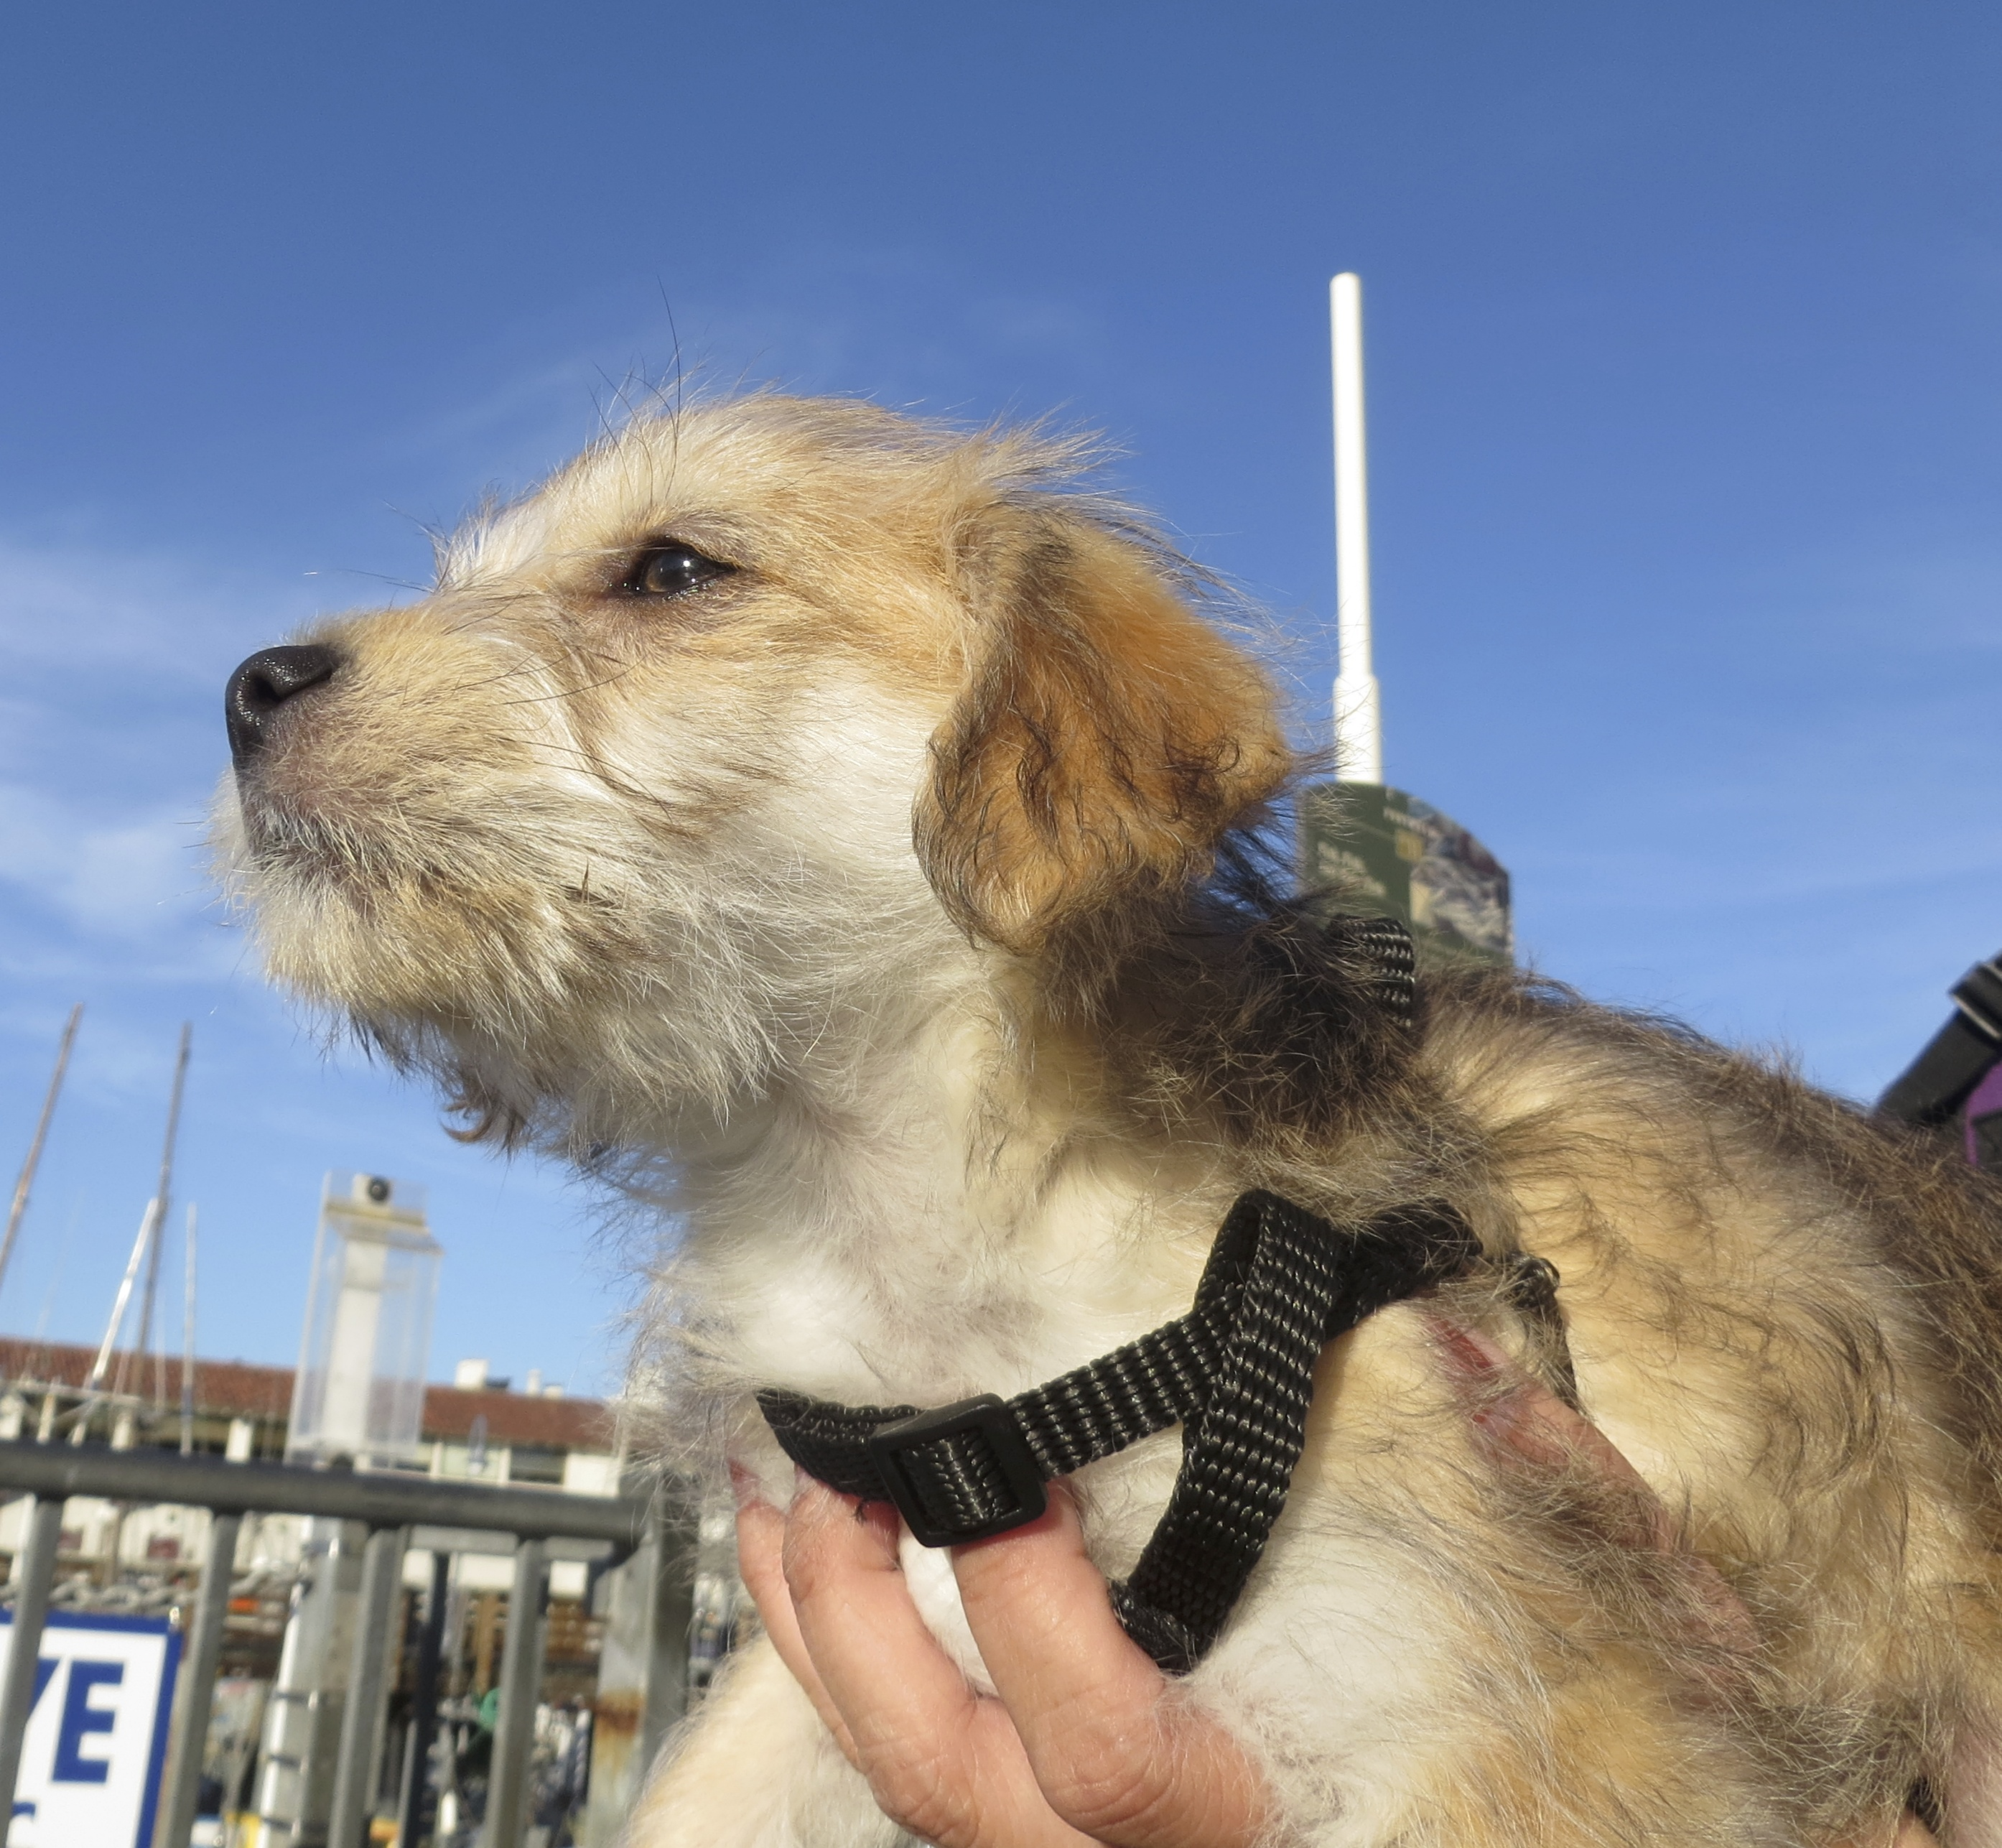 Tan-and-White Silky Terrier/Poodle Mix Puppy With White Antenna Coming Out Of His Back